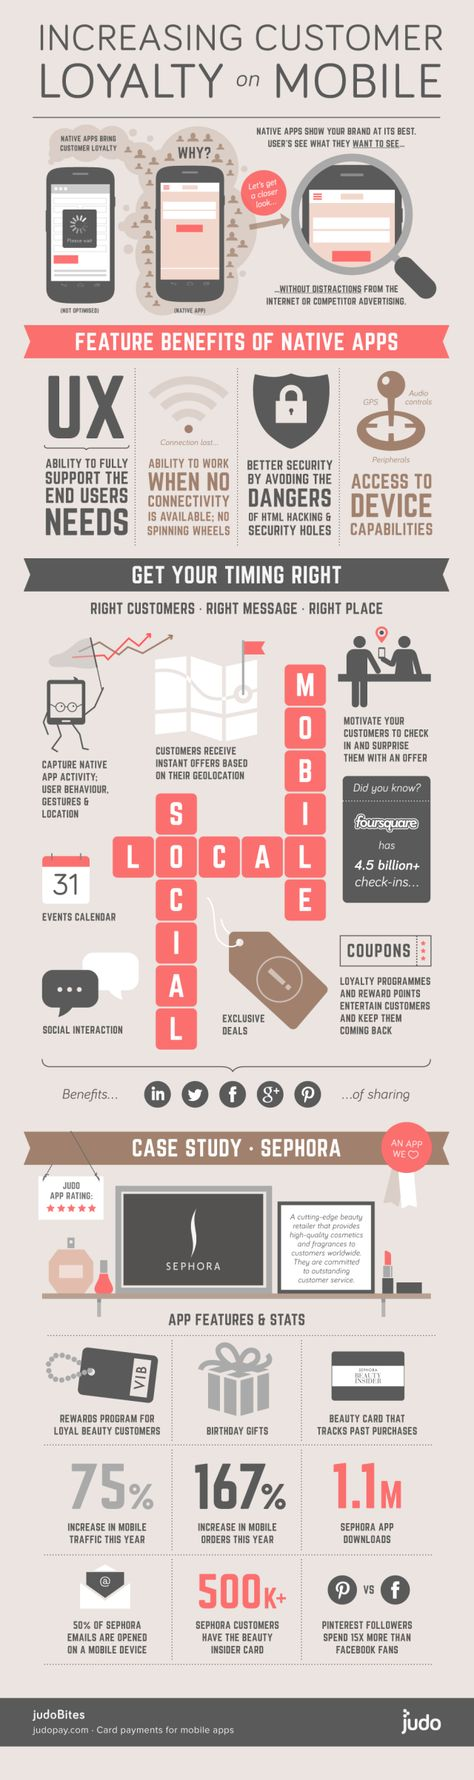 Infographic: Increasing Customer Loyalty on Mobile